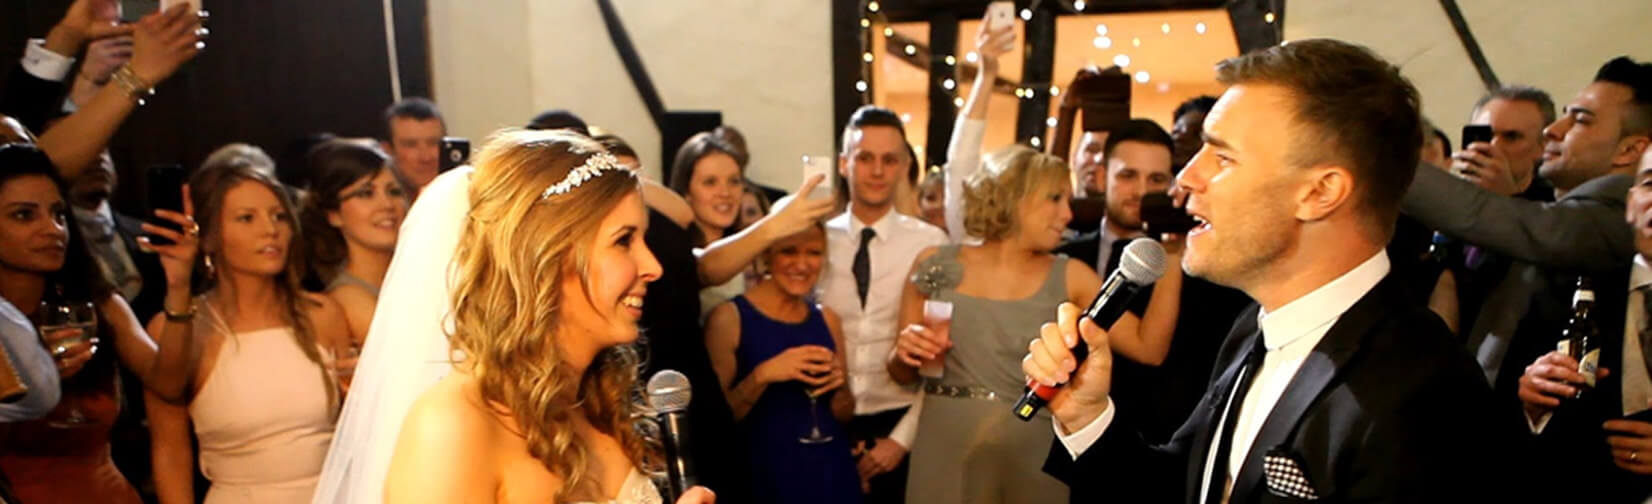 Could Gary Barlow Sing at Your Wedding?